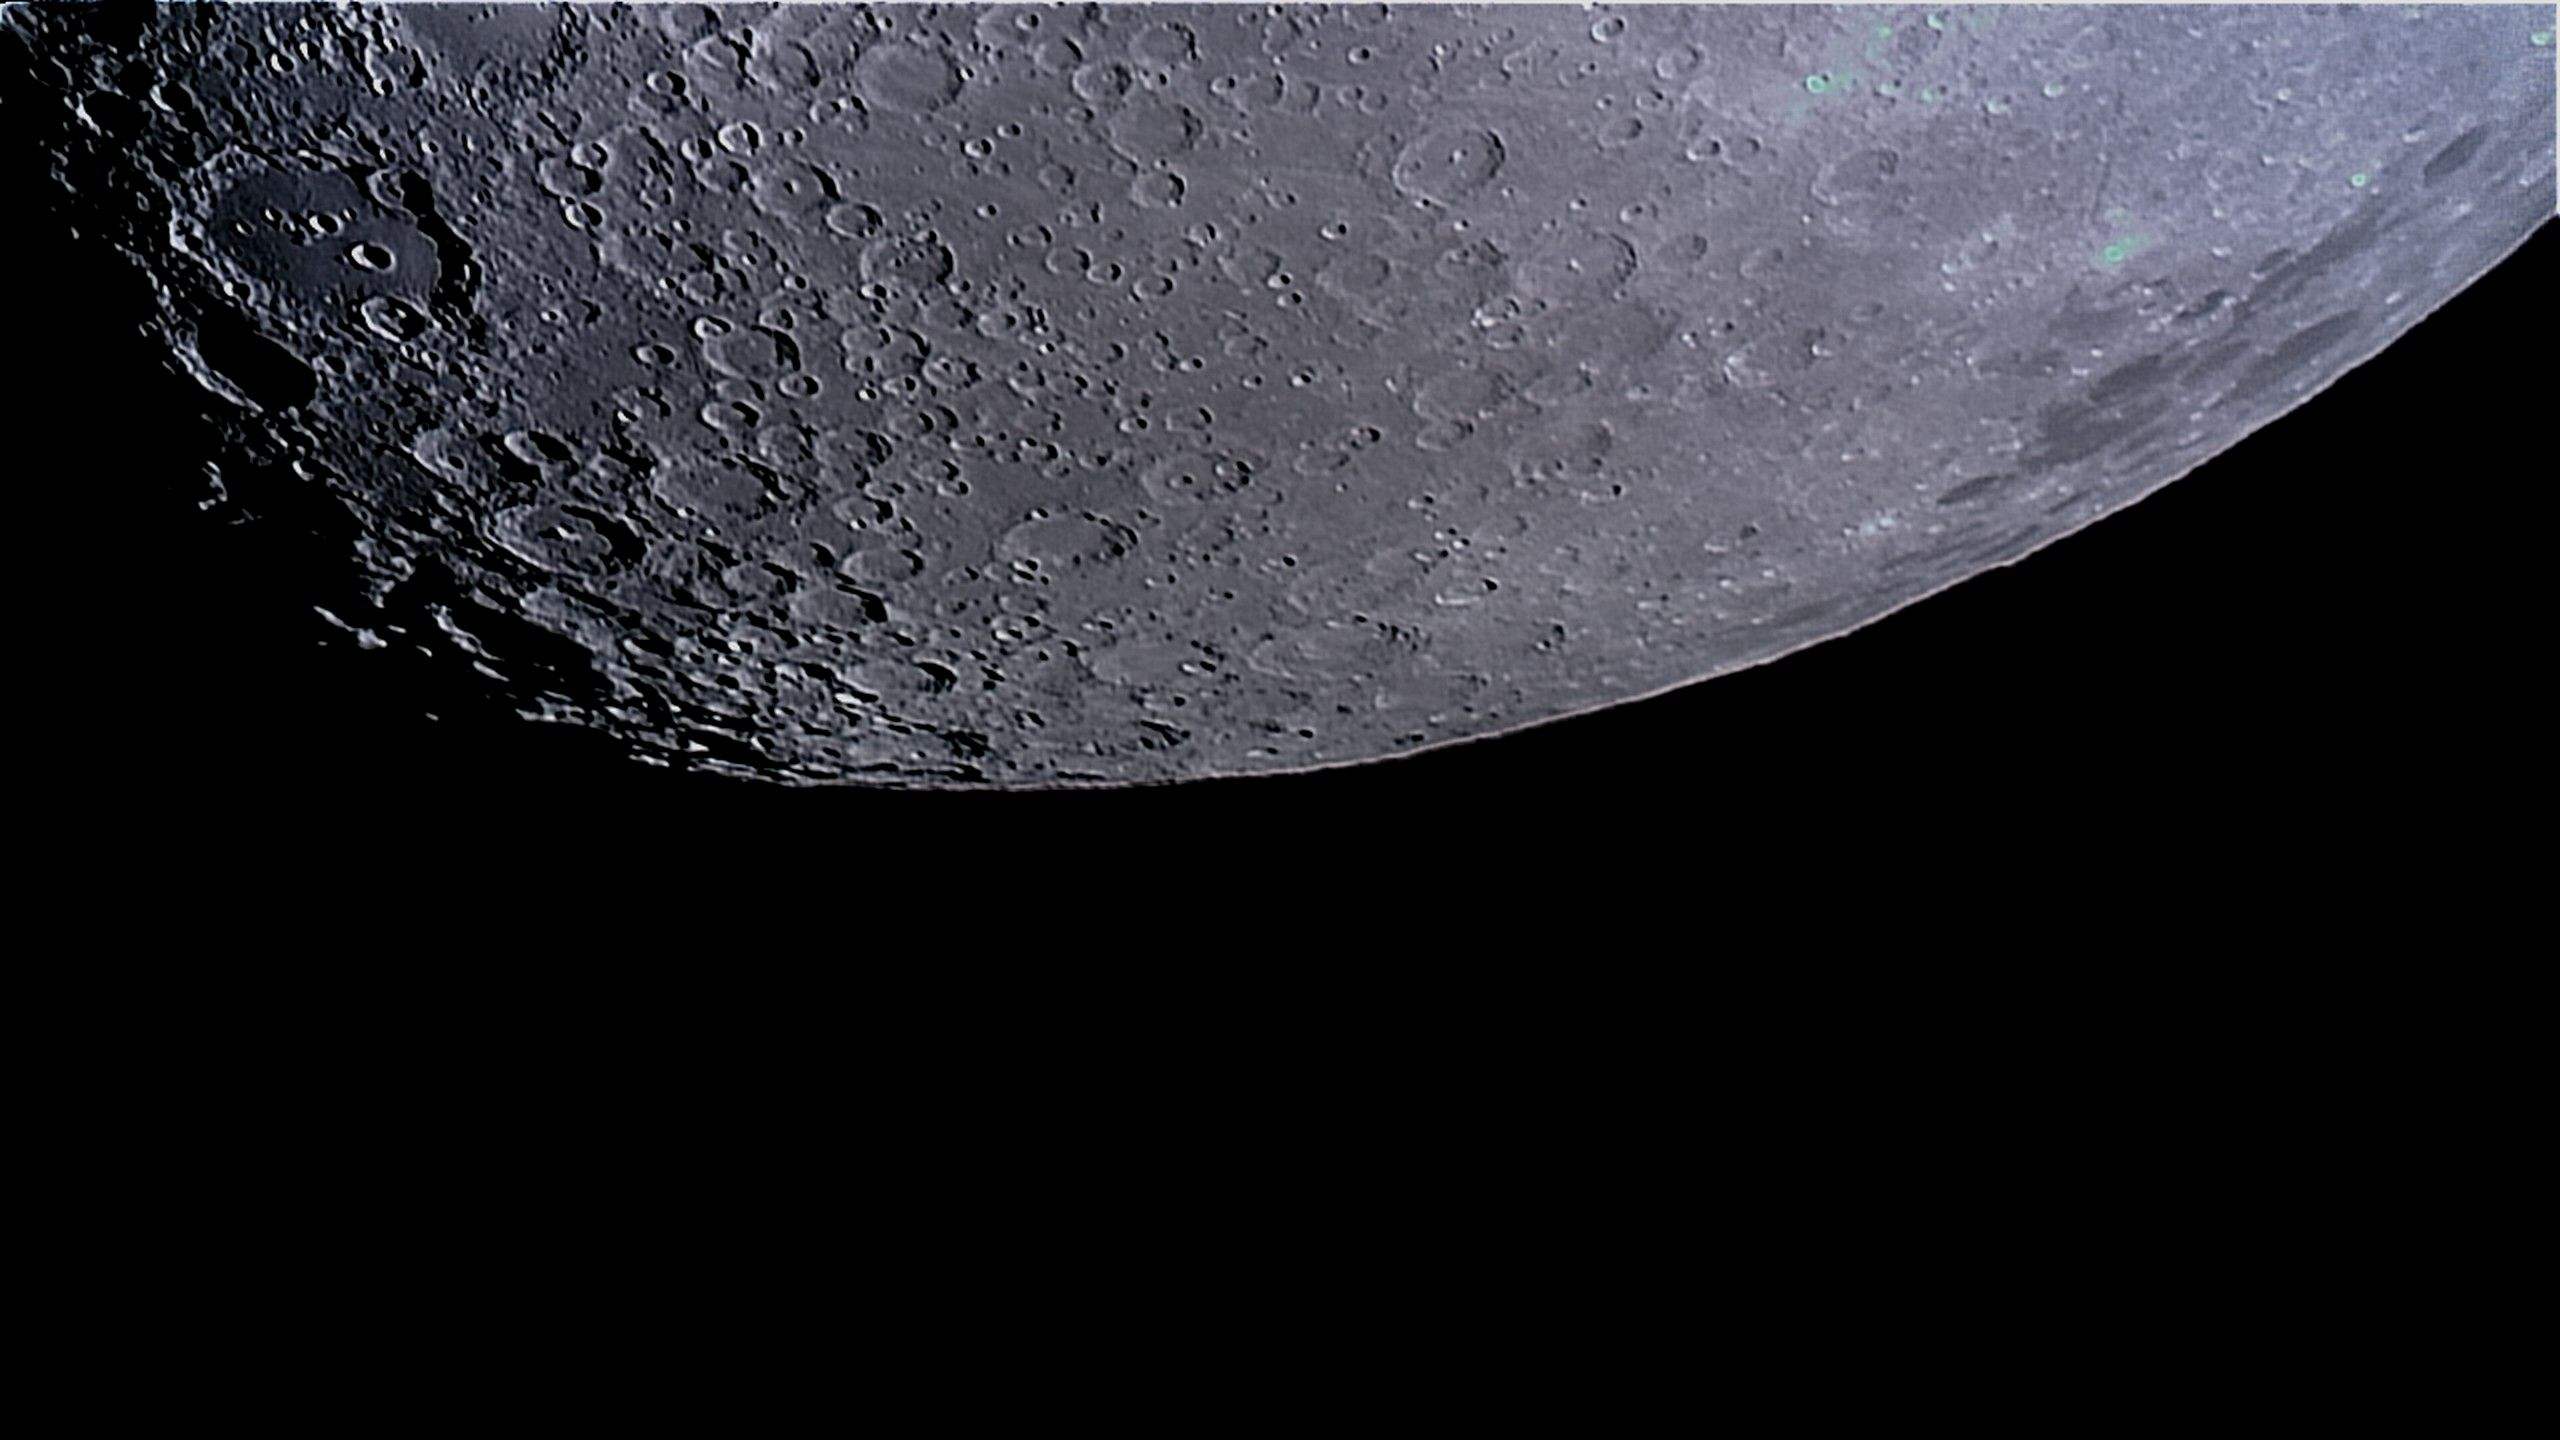 Southern Lunar Landscape, Covered With Imact Craters